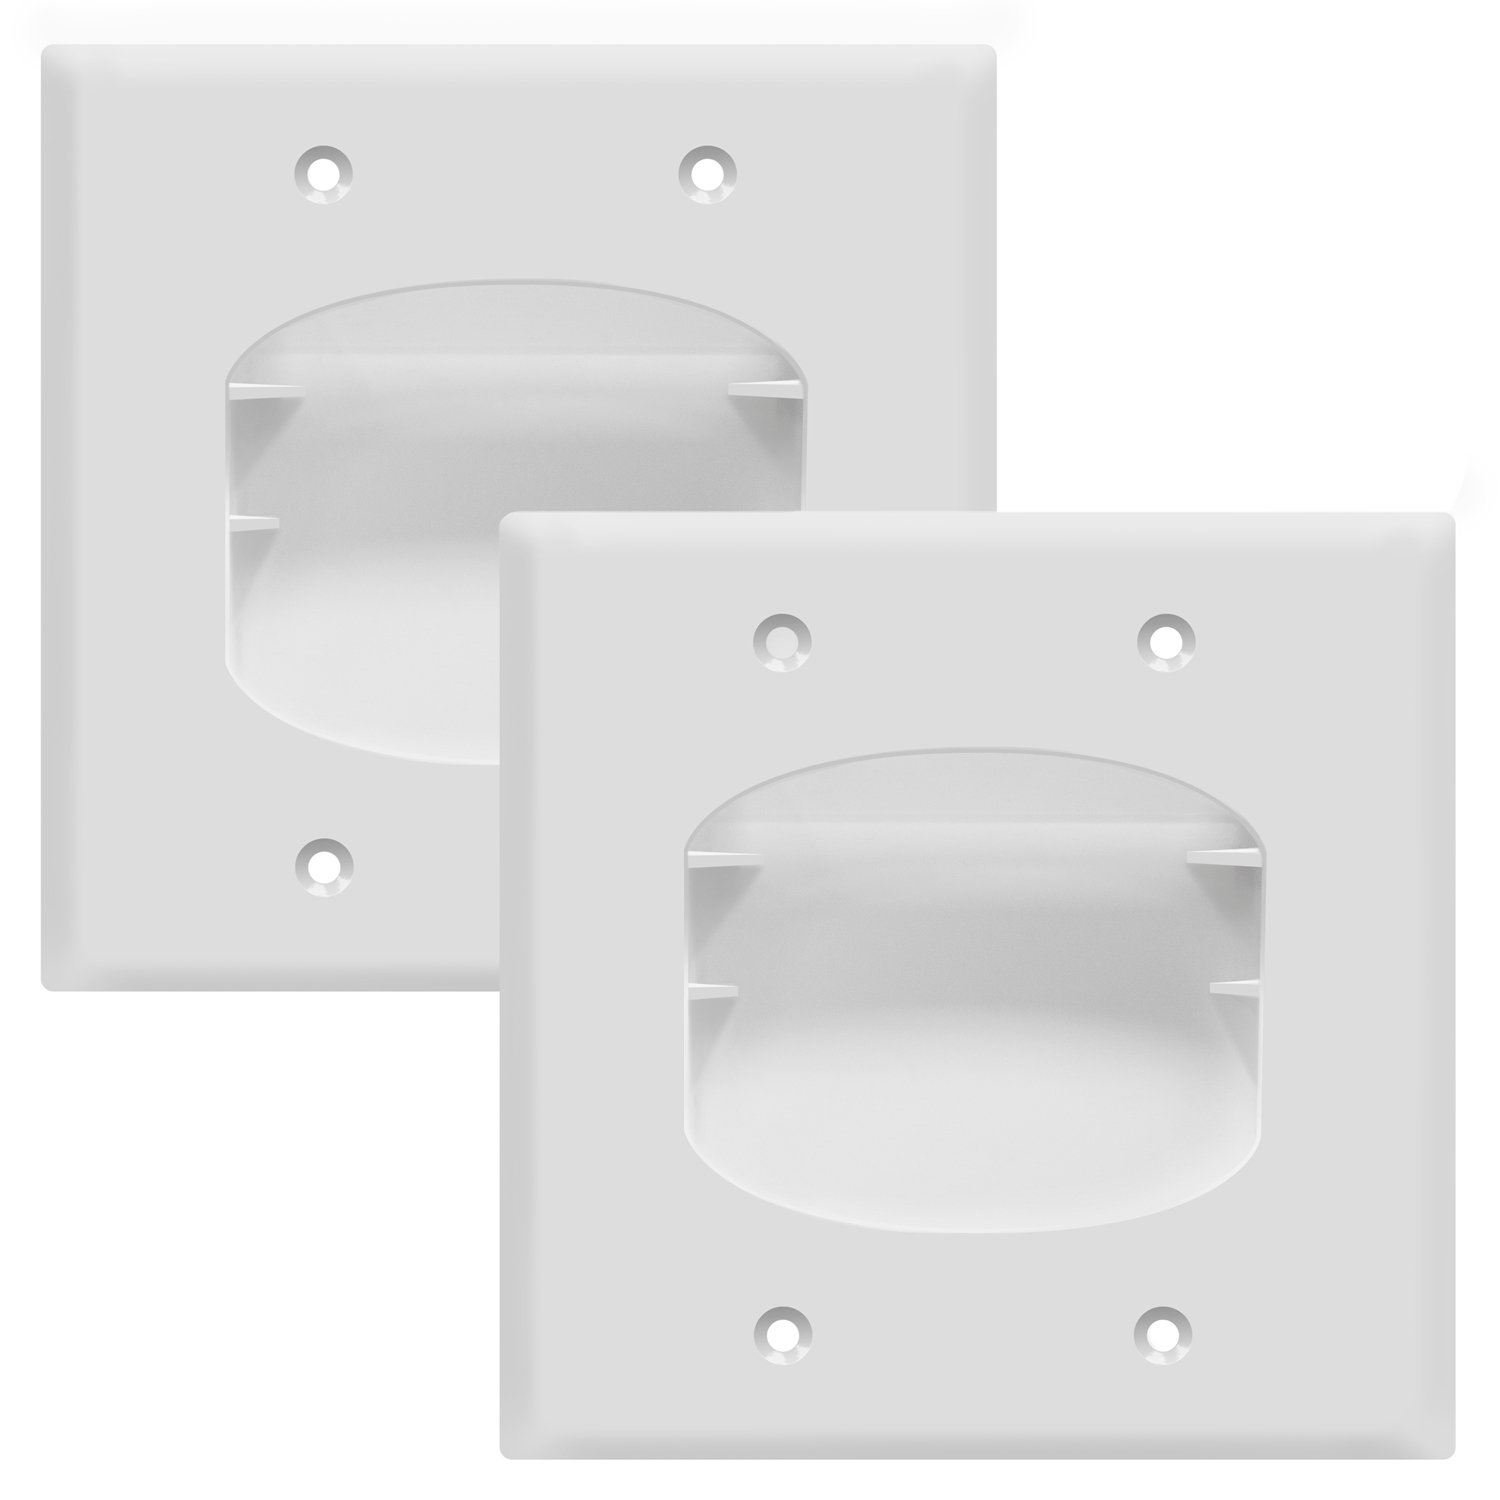 TOPGREENER TG8882-2PCS 2-Gang Recessed Low Voltage Cable Wall Plate Flush Mount Media Wire Pass Through, White (2 Pack) by TOPGREENER